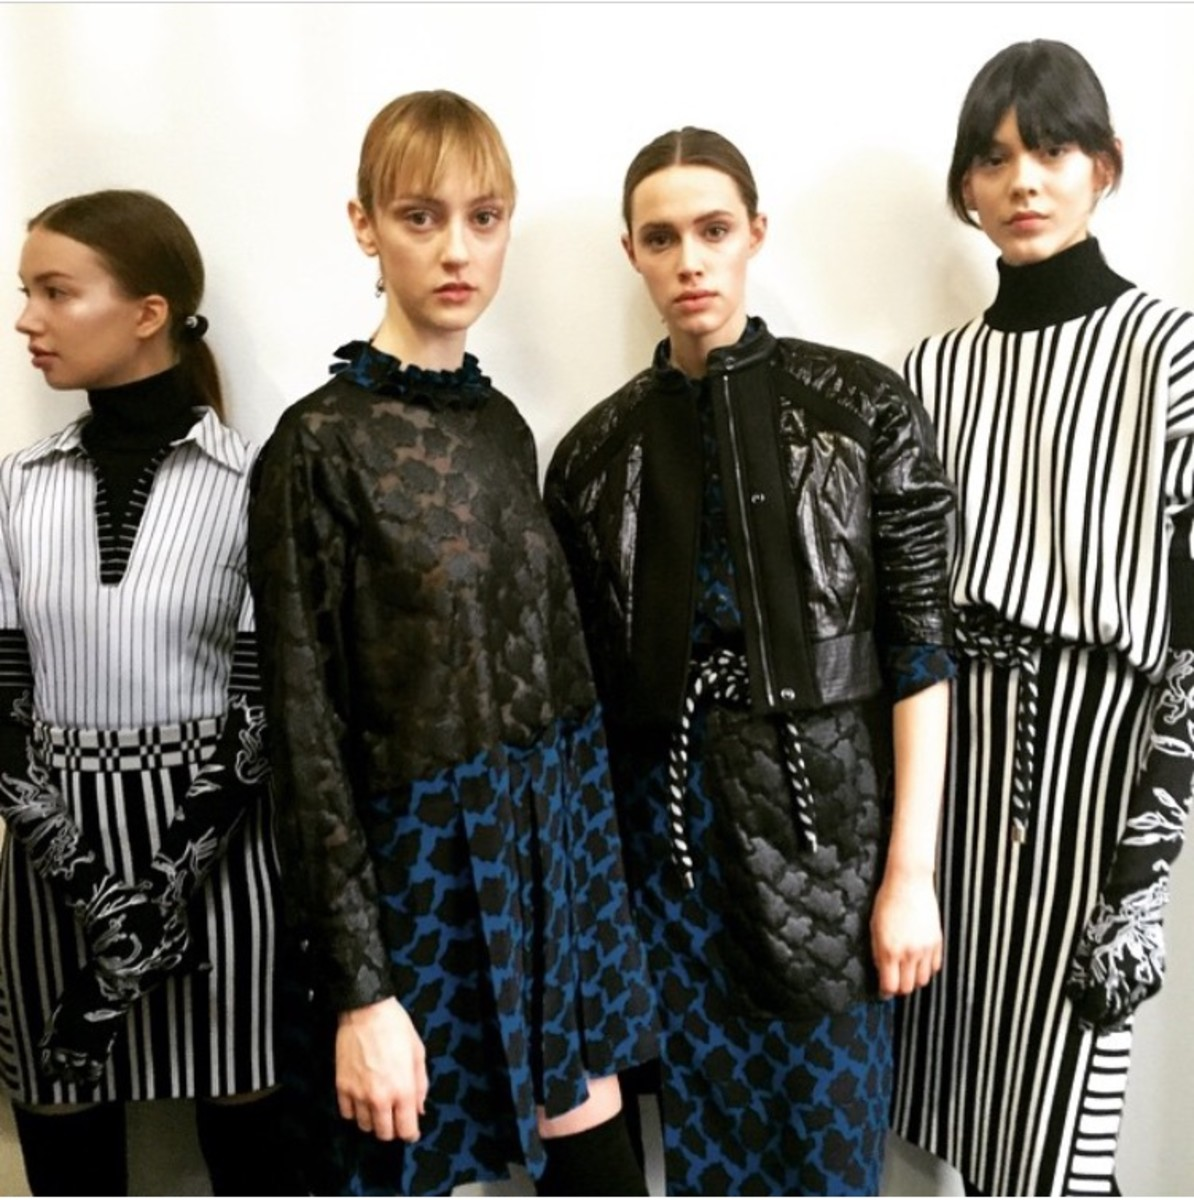 Image provided by Tanya Taylor